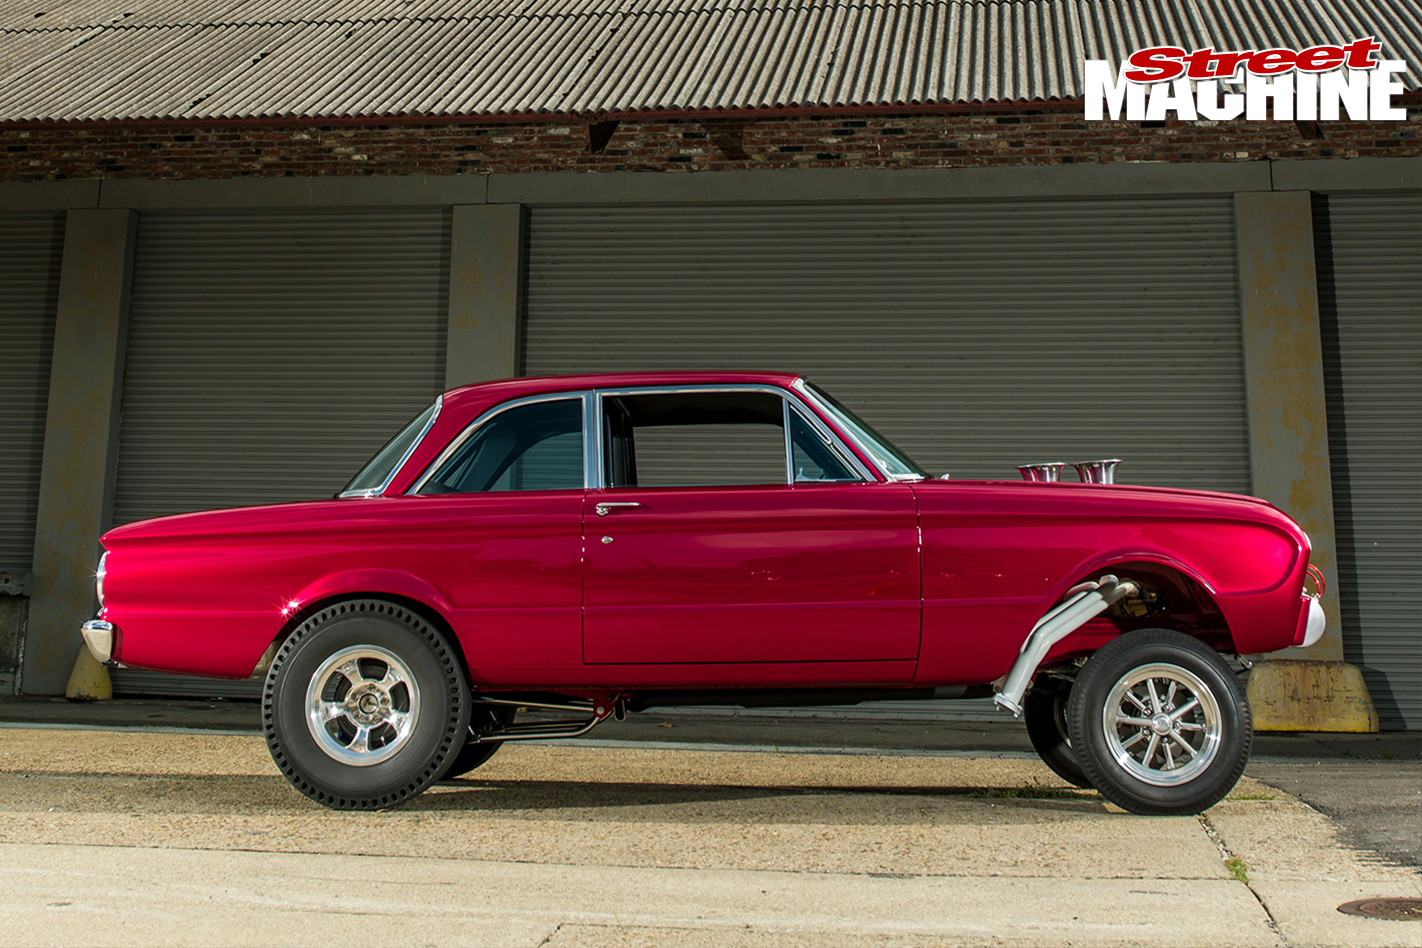 Ford -Falcon -gasser -side